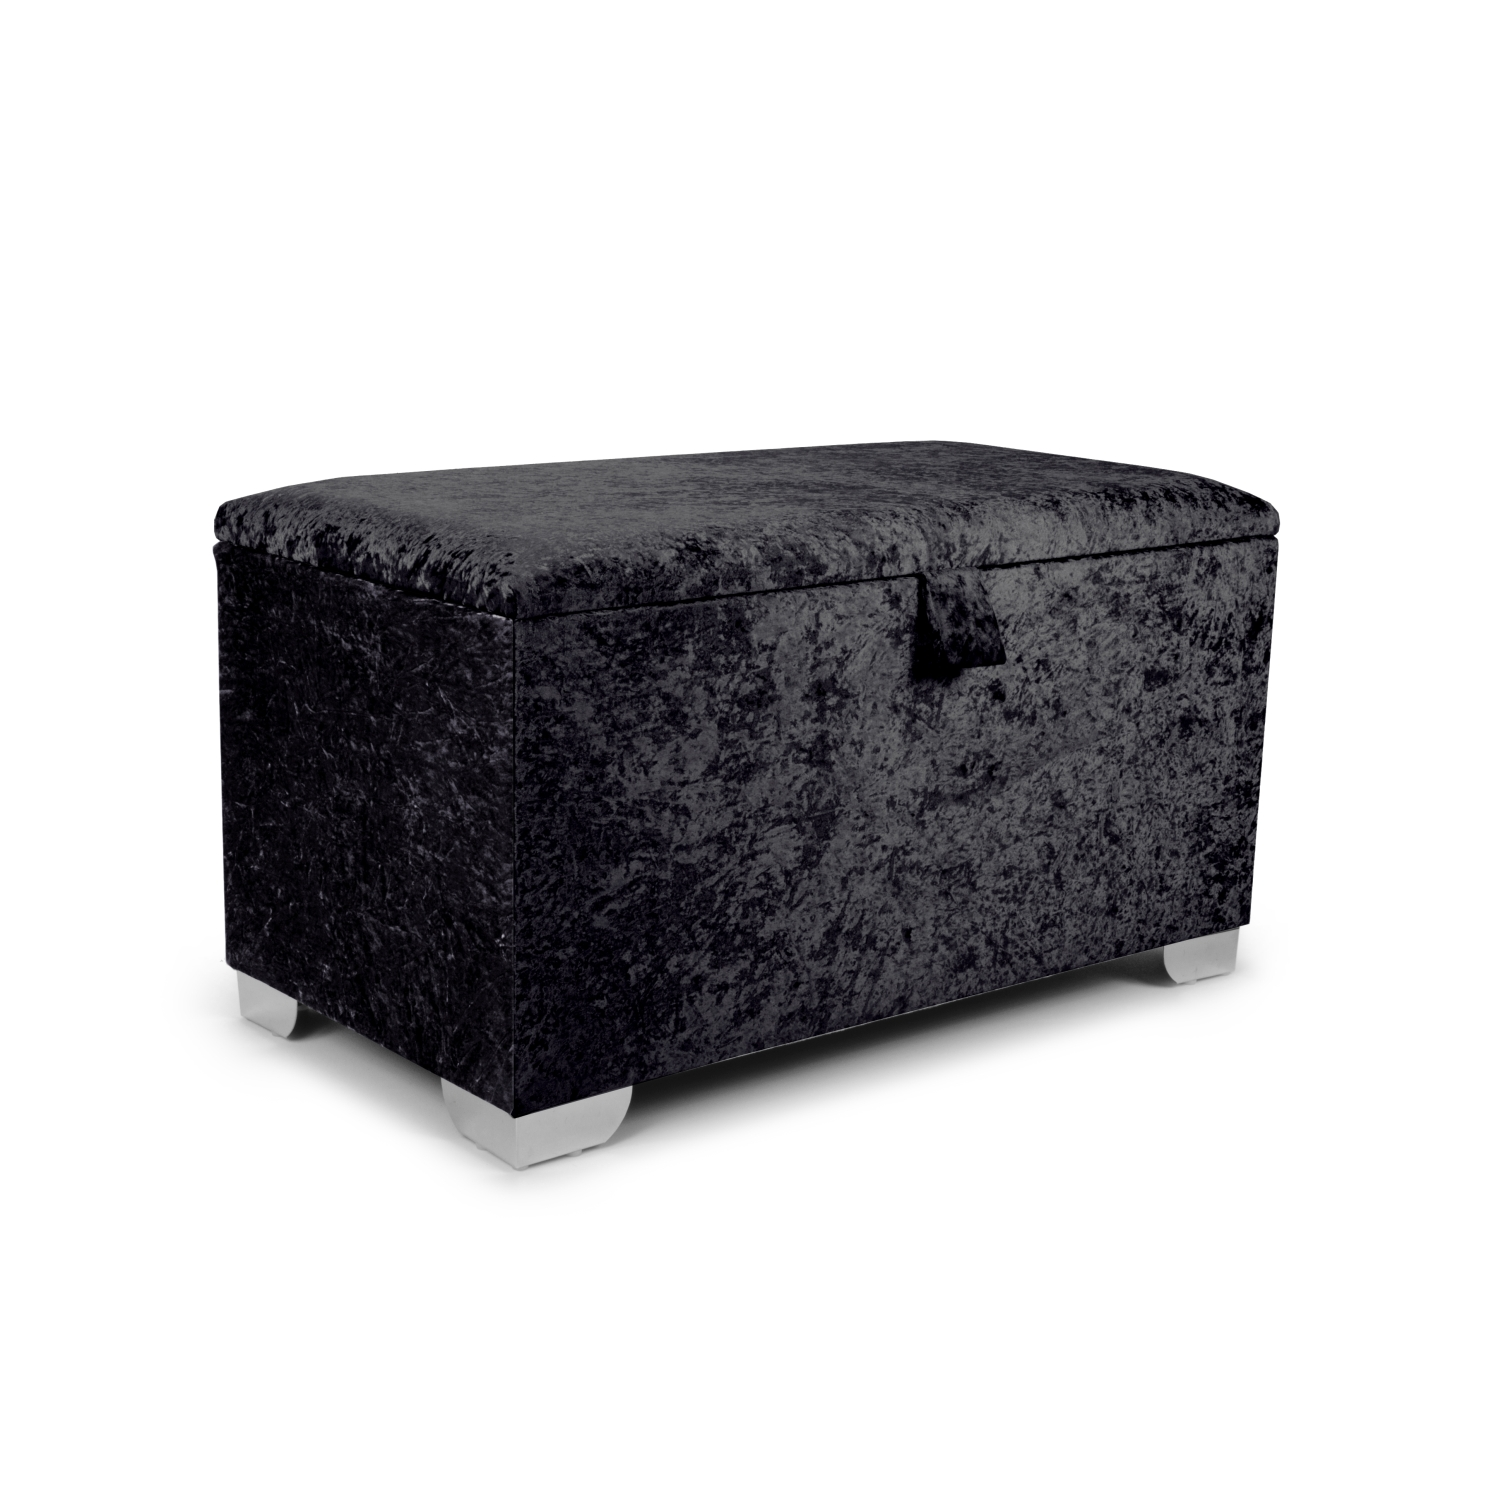 Enjoyable Plain 3Ft Ottoman Crushed Black Velvet Ncnpc Chair Design For Home Ncnpcorg